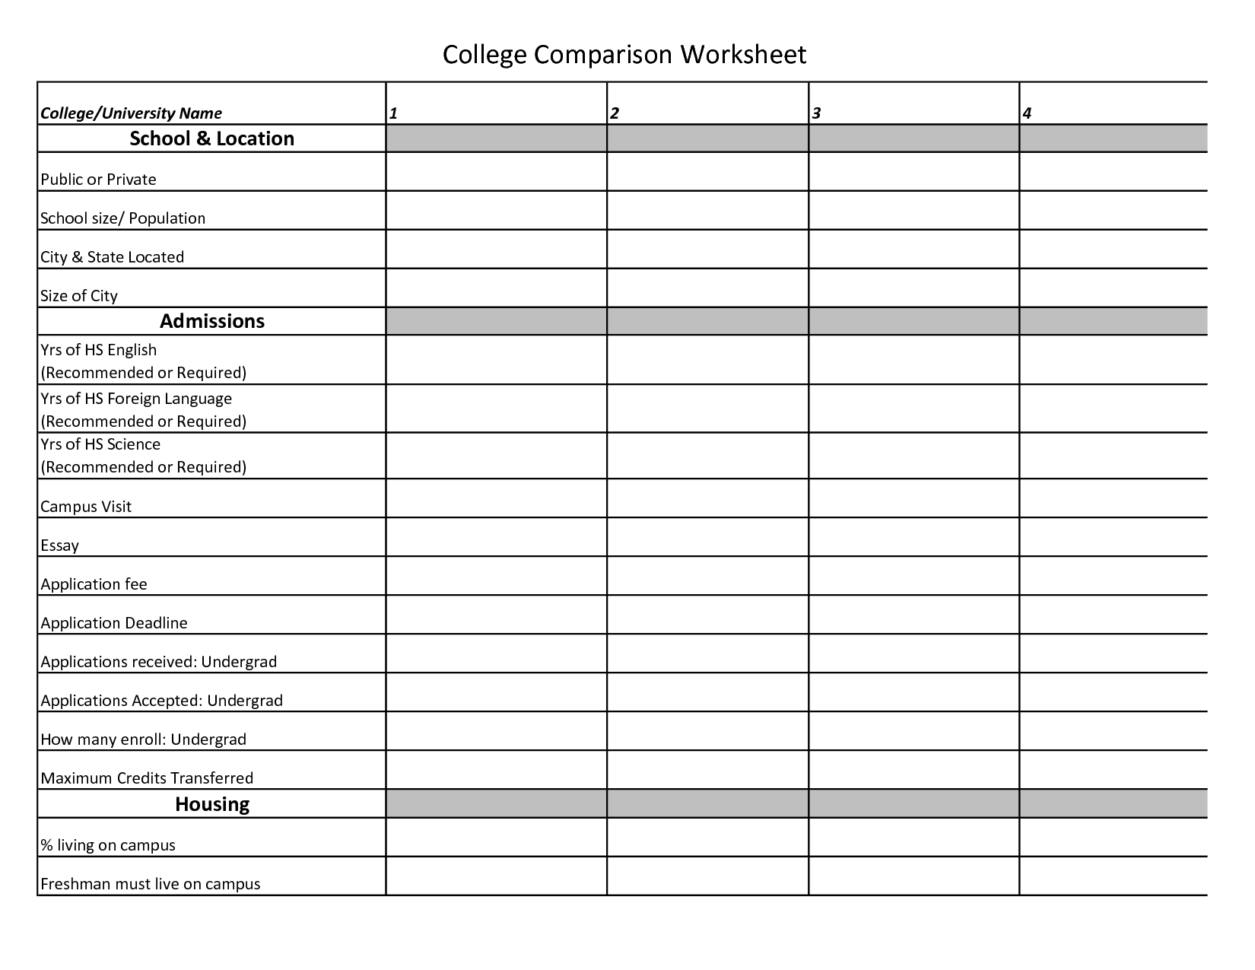 College Cost Spreadsheet With College Cost Comparison Worksheet Template Best Maggi Locustdesign